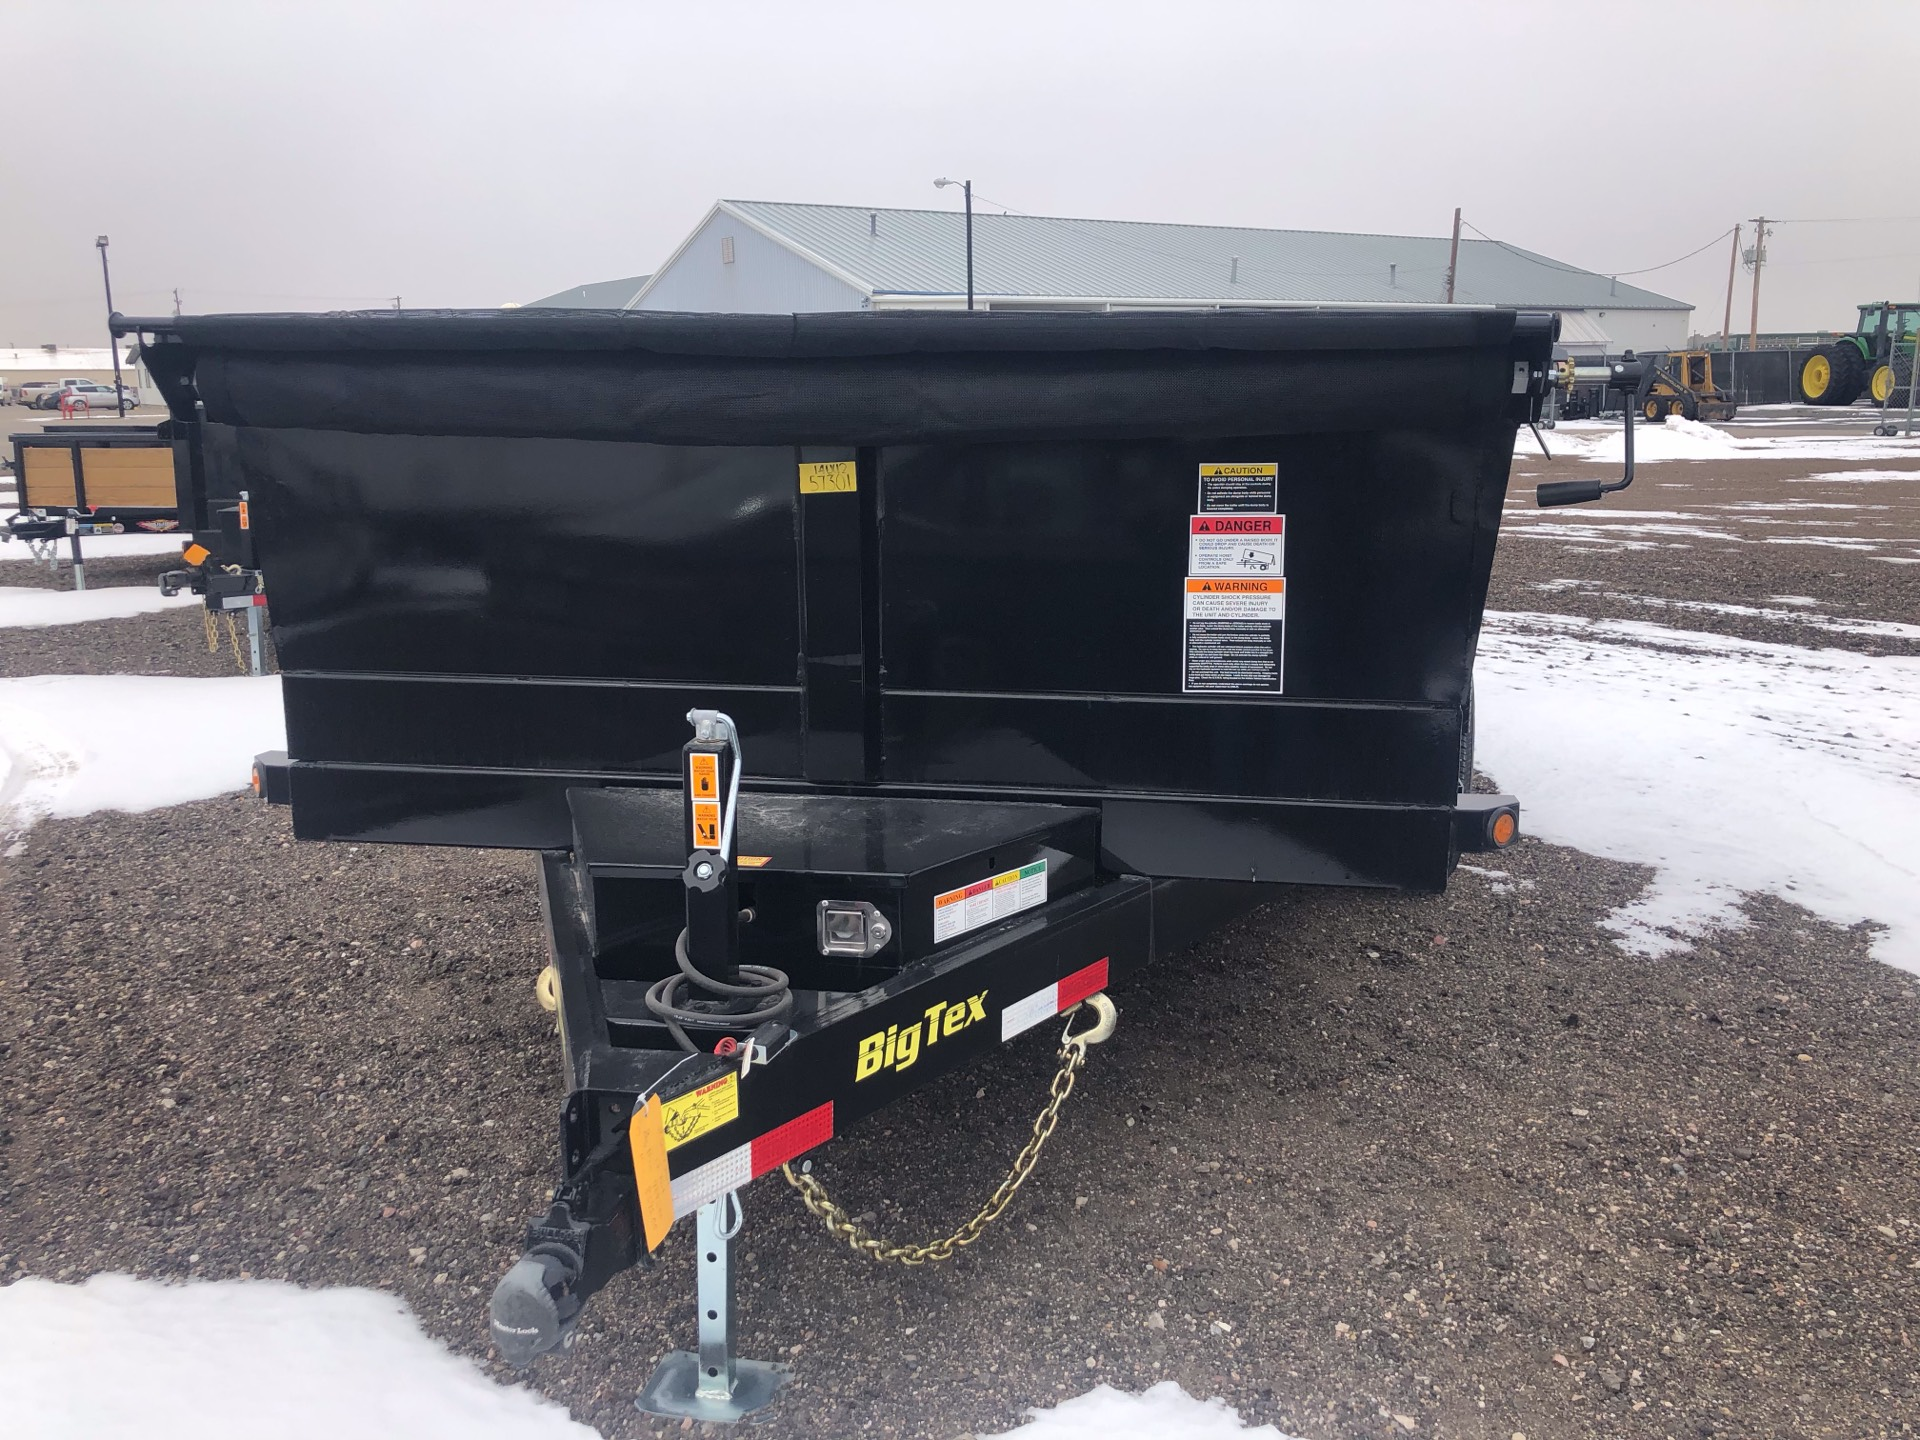 2019 Big Tex Trailers - Manufacturers BIG TEX 12' DUMP TRAILER 14K TANDEM DUMP W/TARP KIT in Scottsbluff, Nebraska - Photo 1